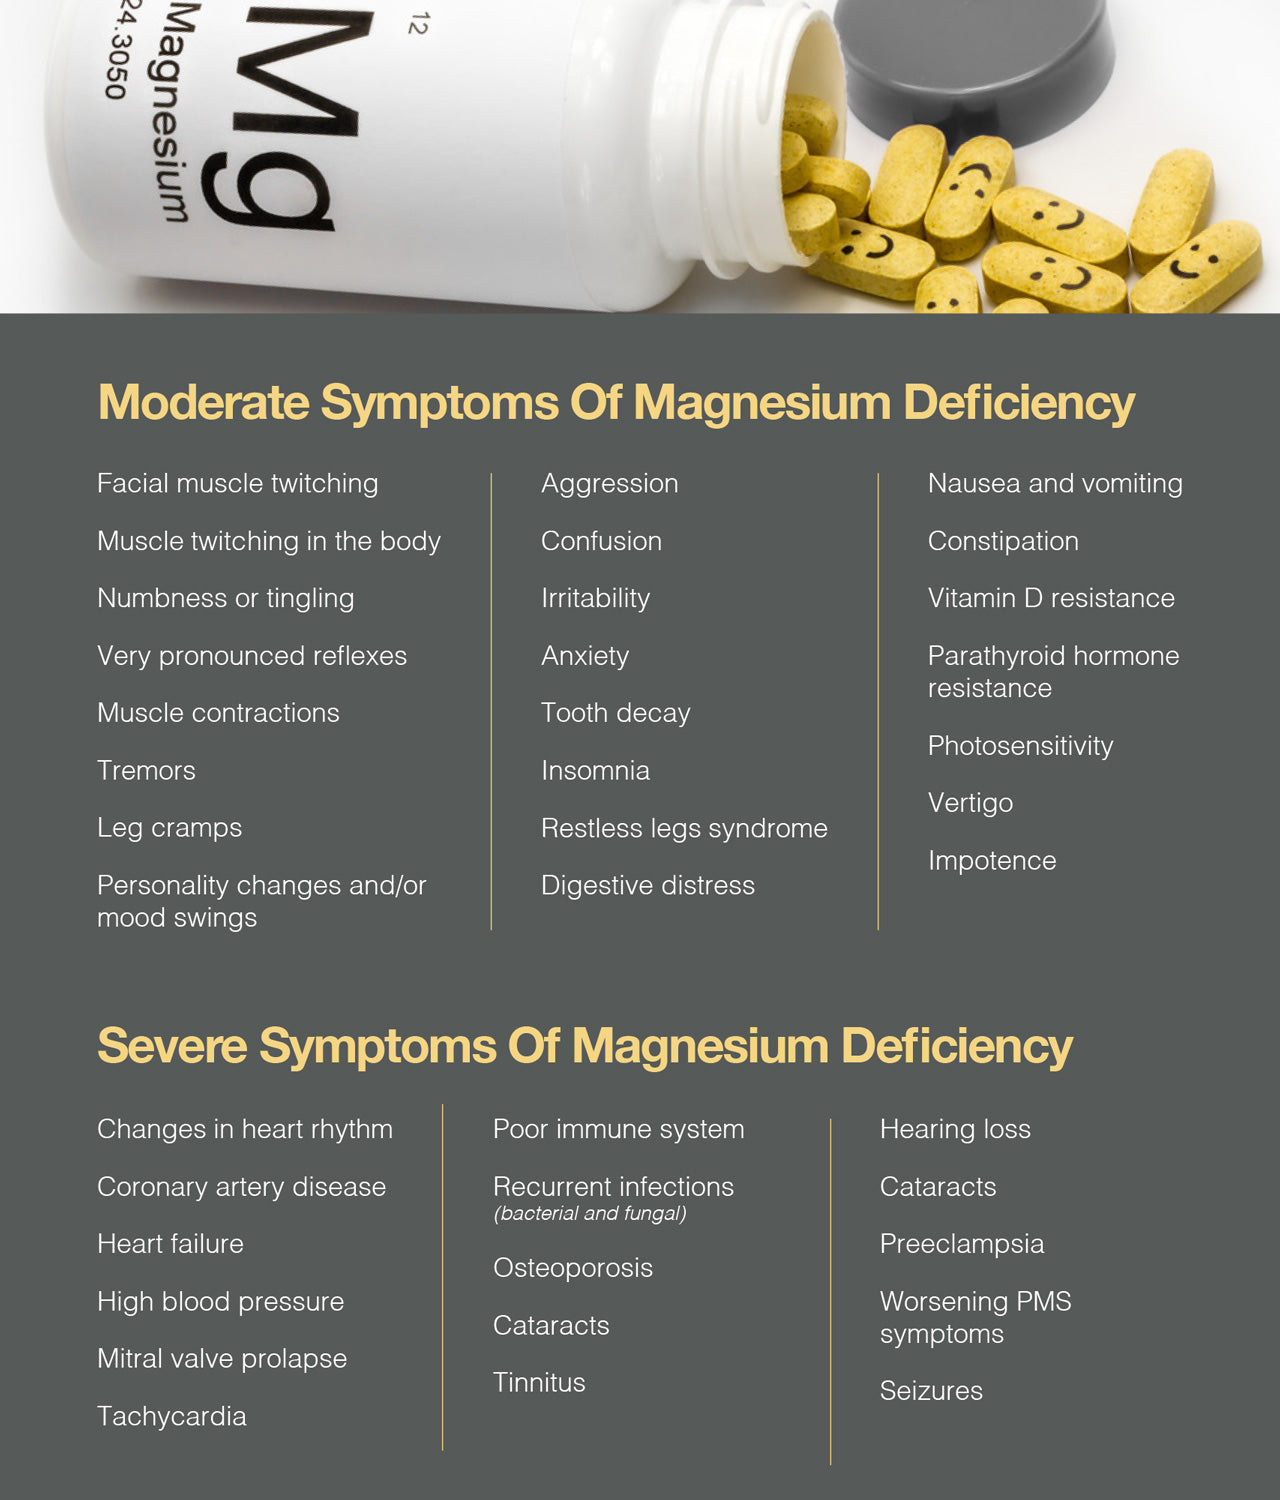 Here are the moderate and severe symptoms of magnesium deficiency.